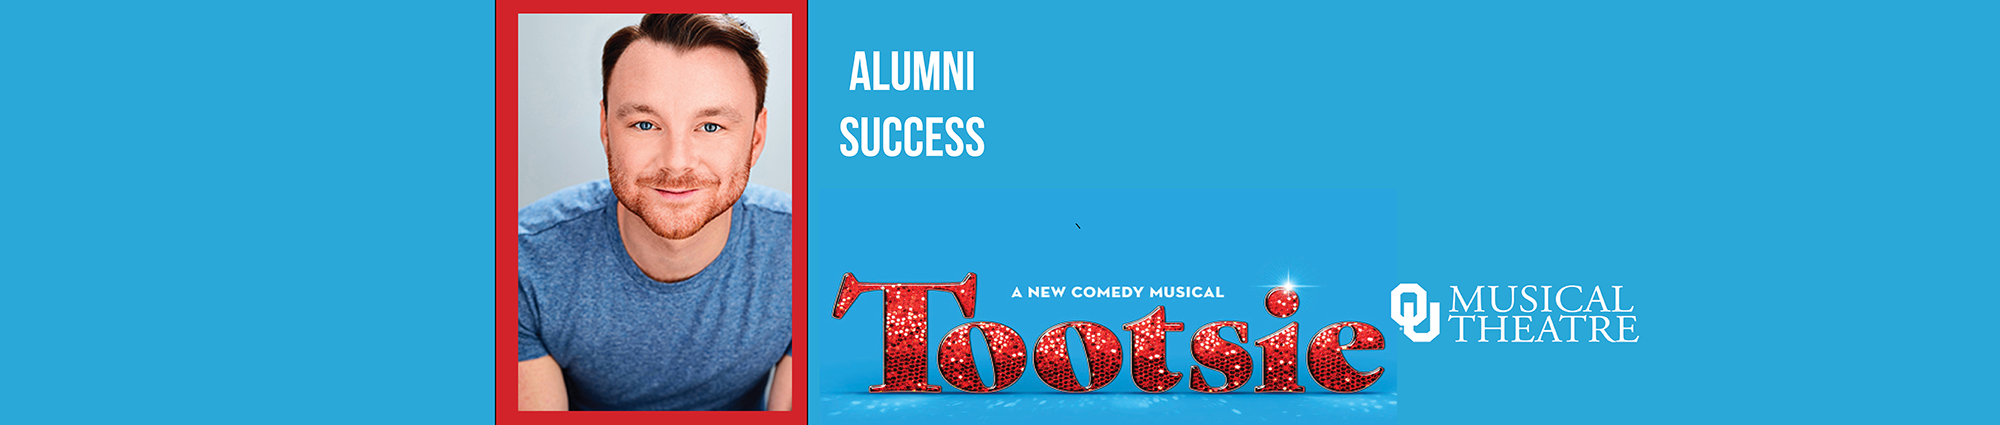 Barry Busby, OUMT '08, has been performing in Tootsie on Broadway.